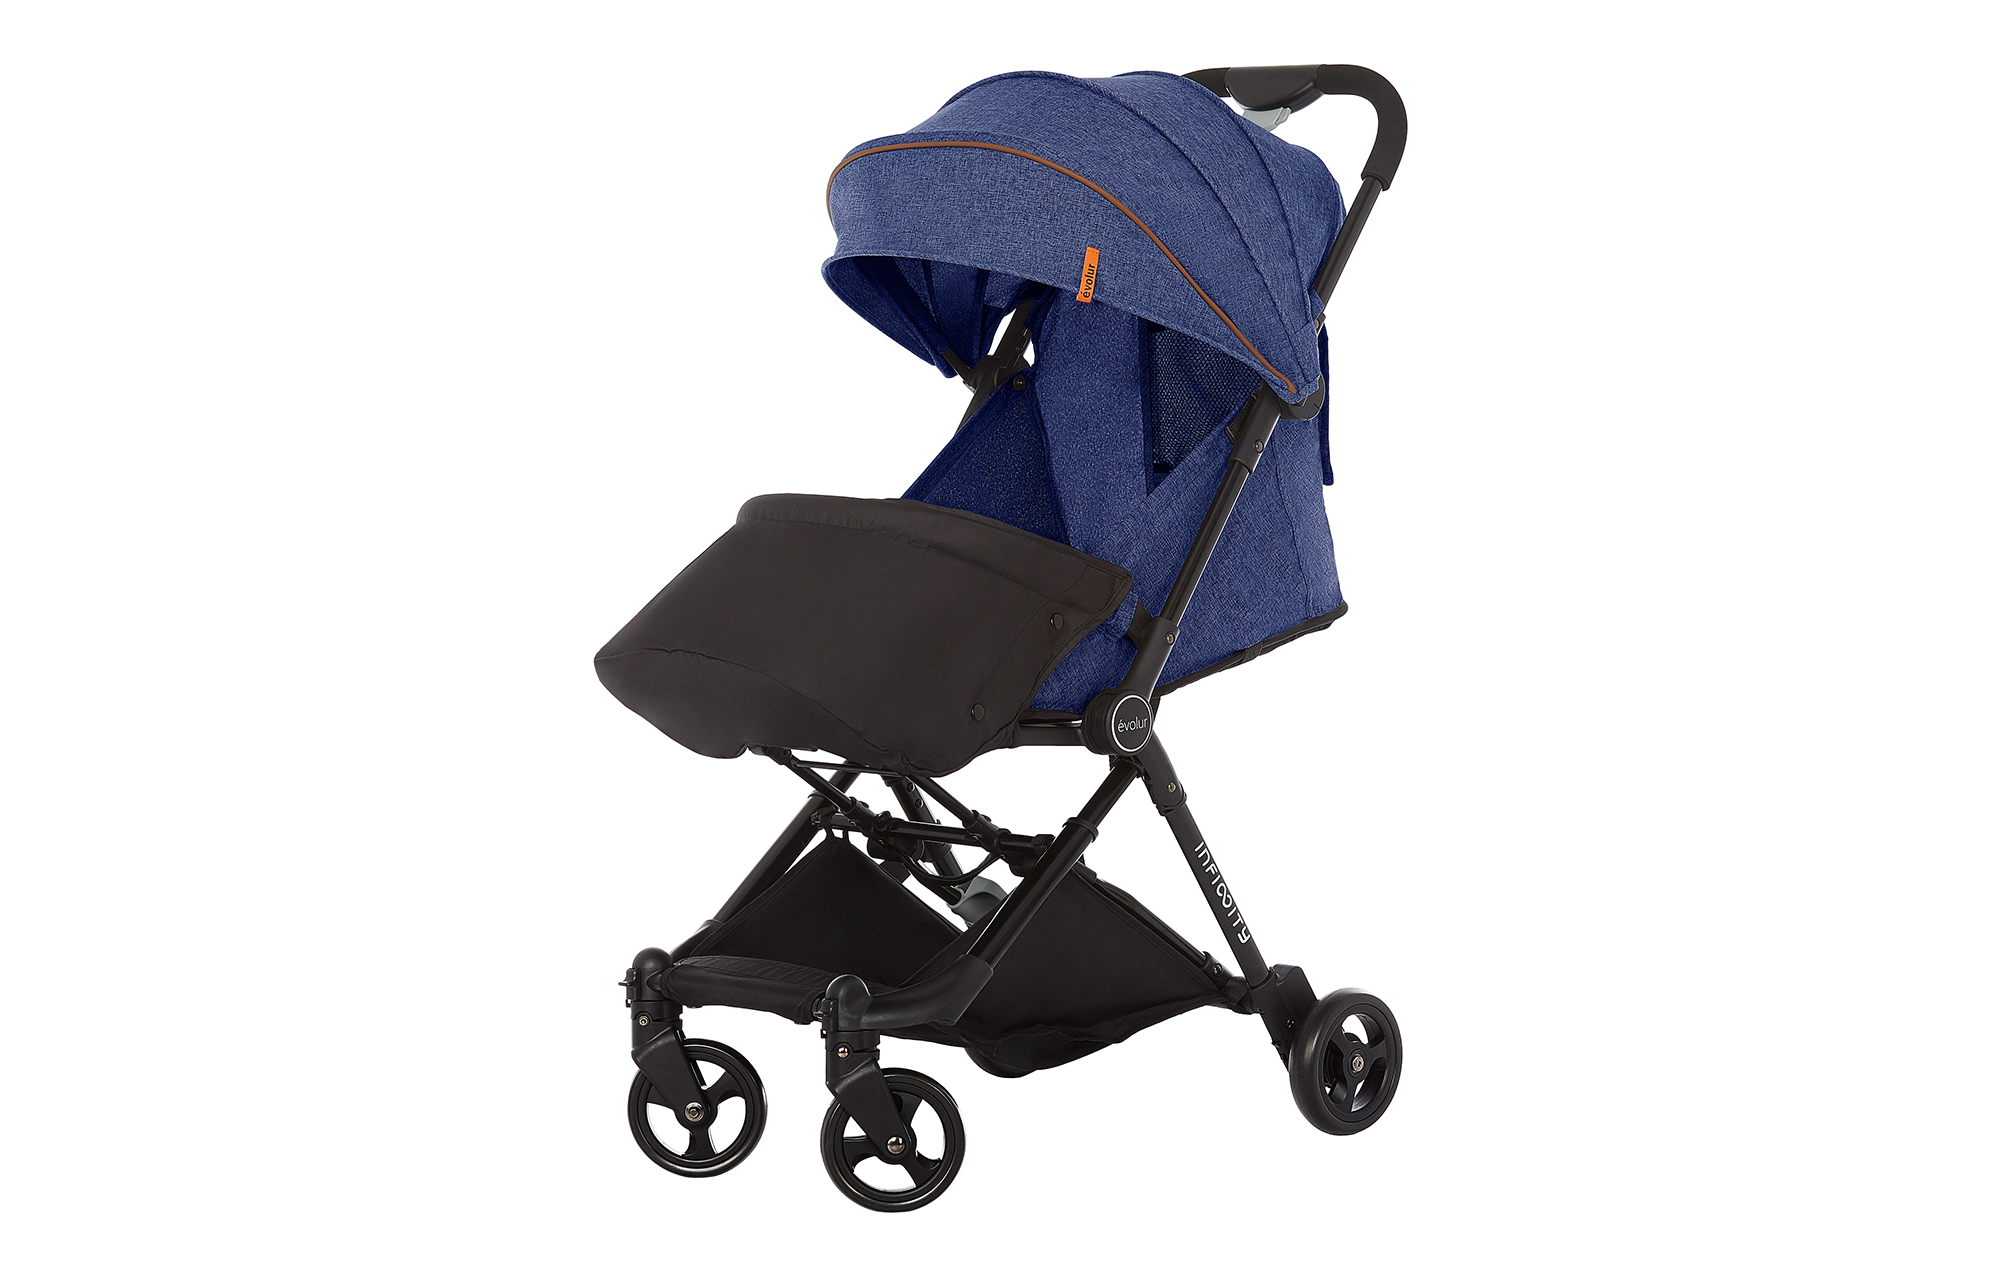 Evolur Infinity Convertible Stroller in Navy